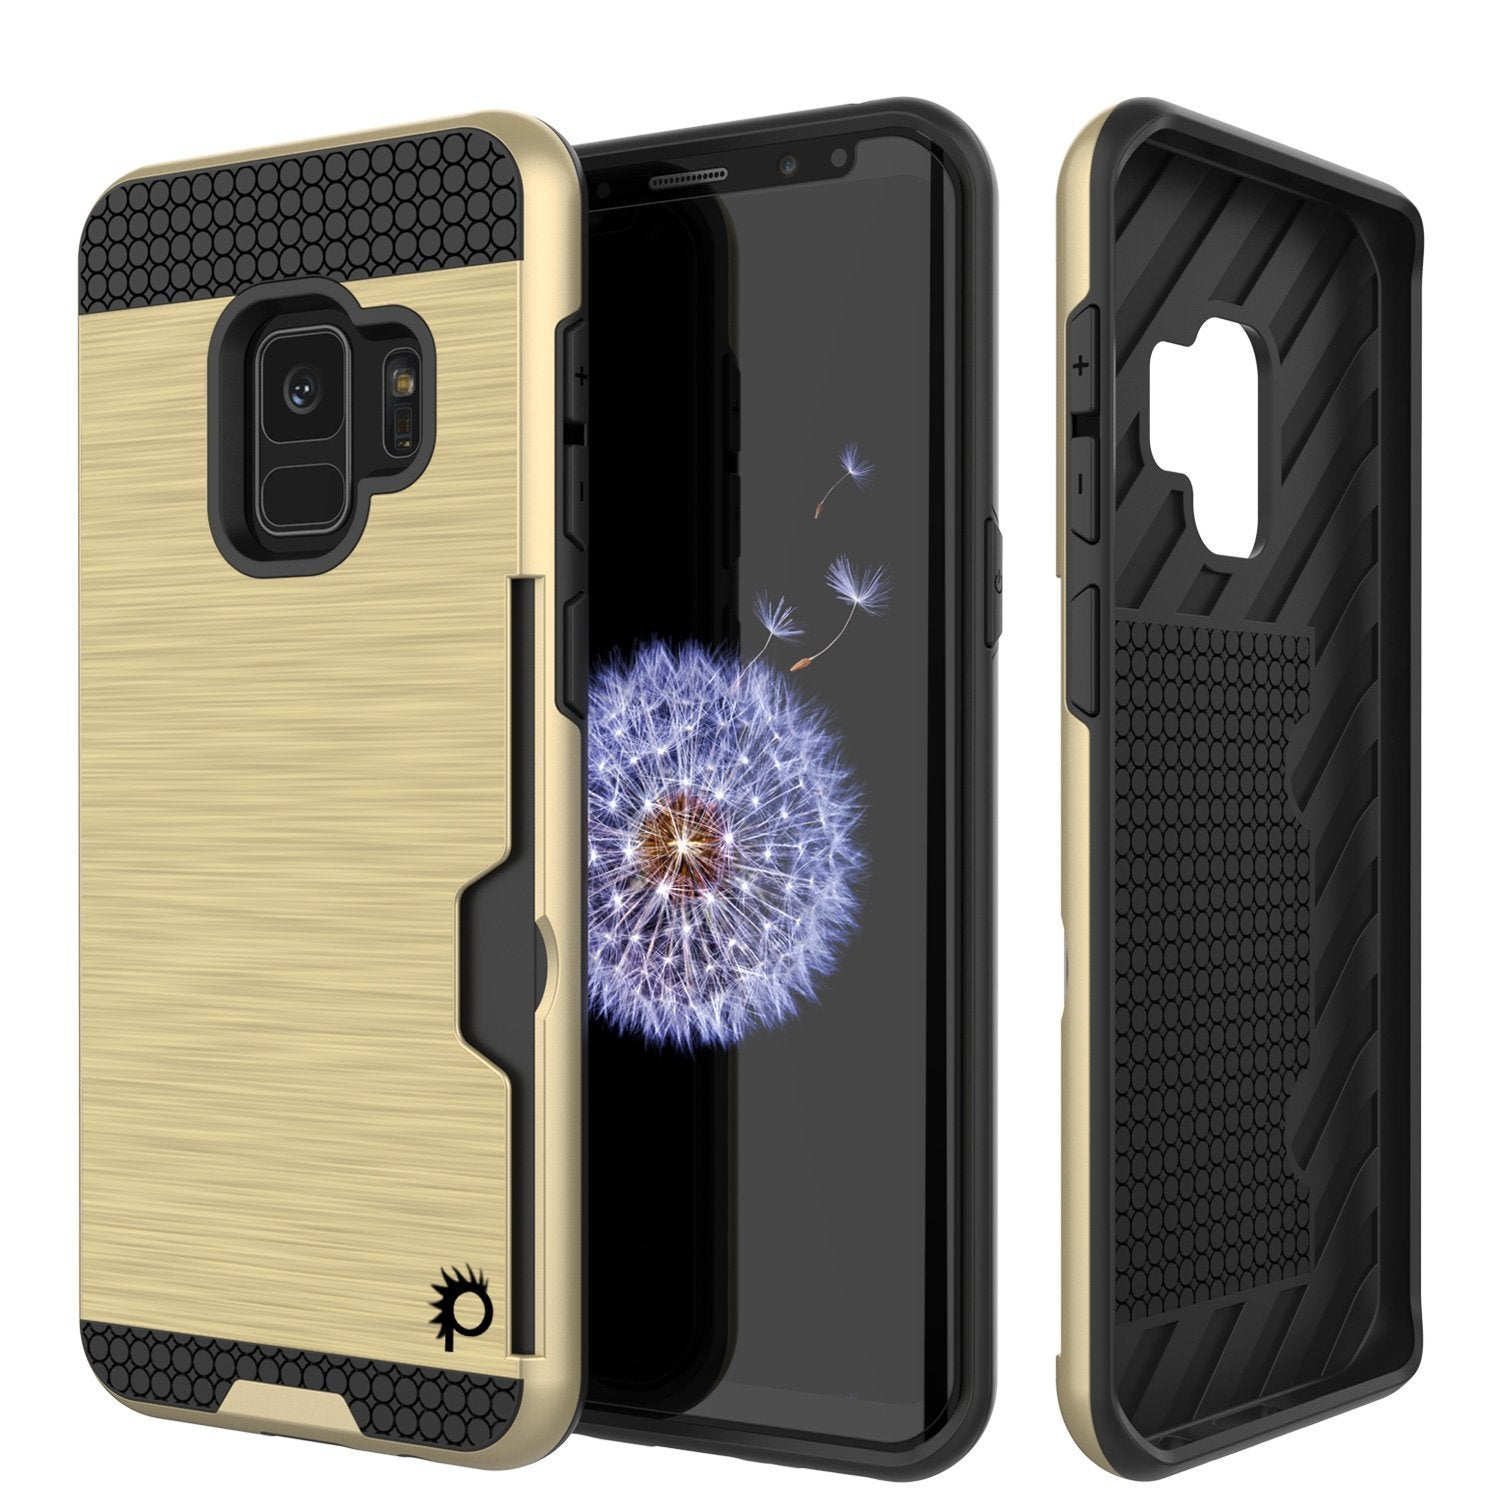 Galaxy S9 Case, PUNKcase [SLOT Series] [Slim Fit] Dual-Layer Armor Cover w/Integrated Anti-Shock System, Credit Card Slot [Gold]